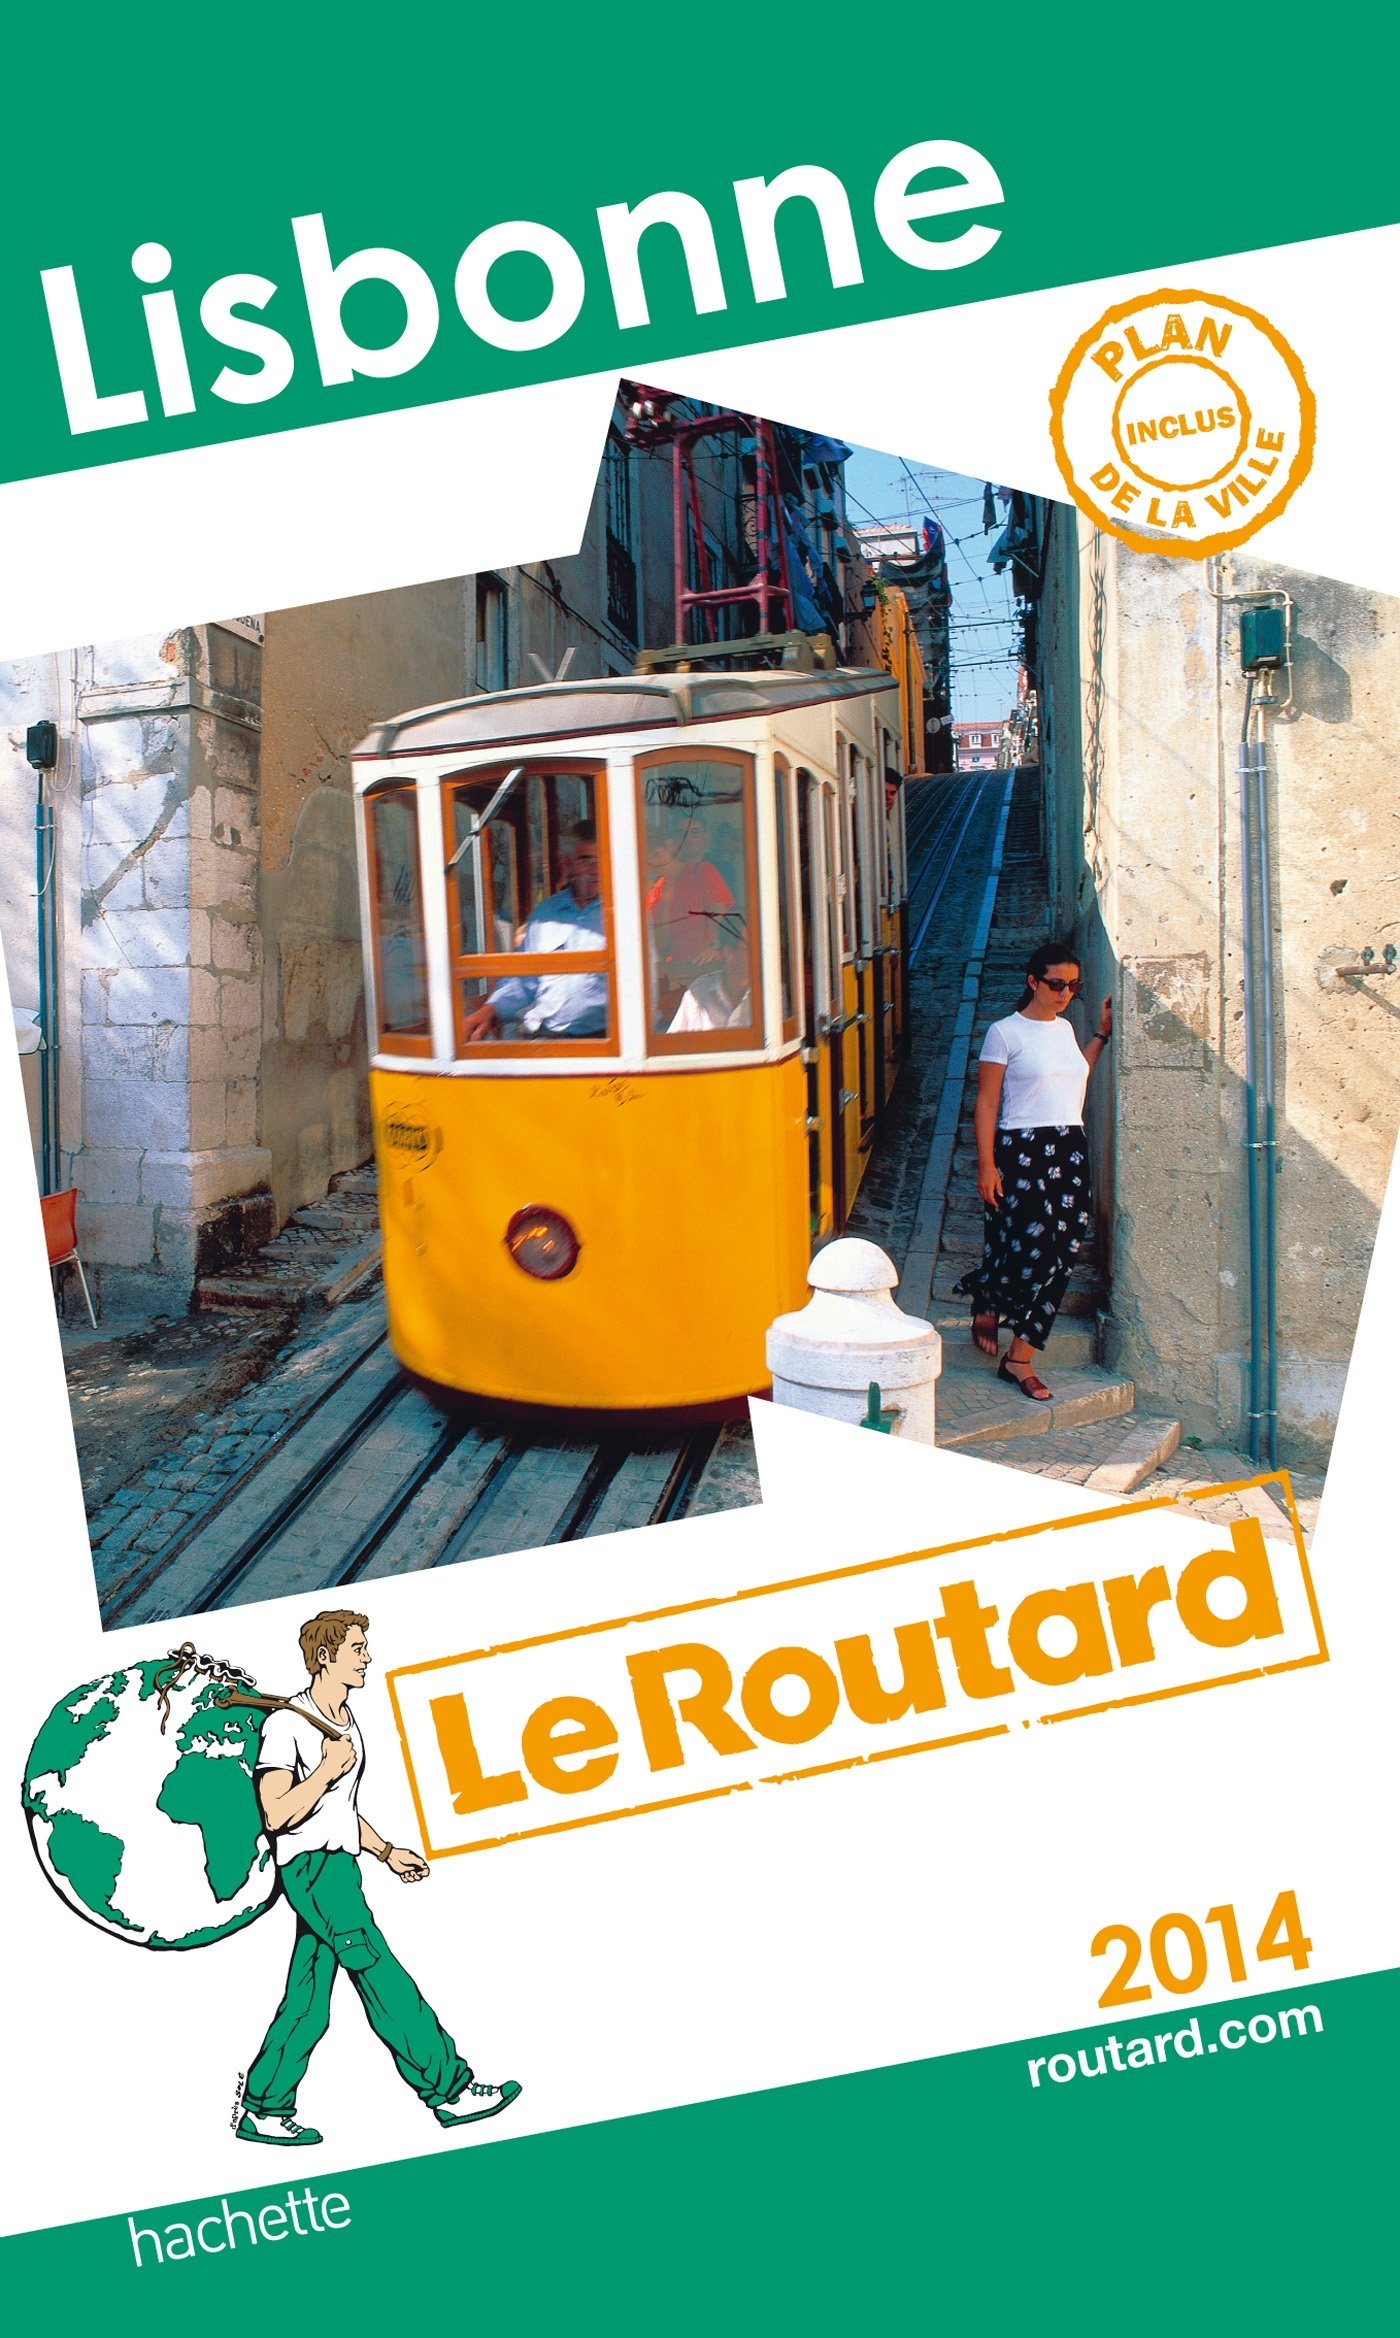 Le Routard Lisbonne 2014: 9782012457515: Amazon.com: Books